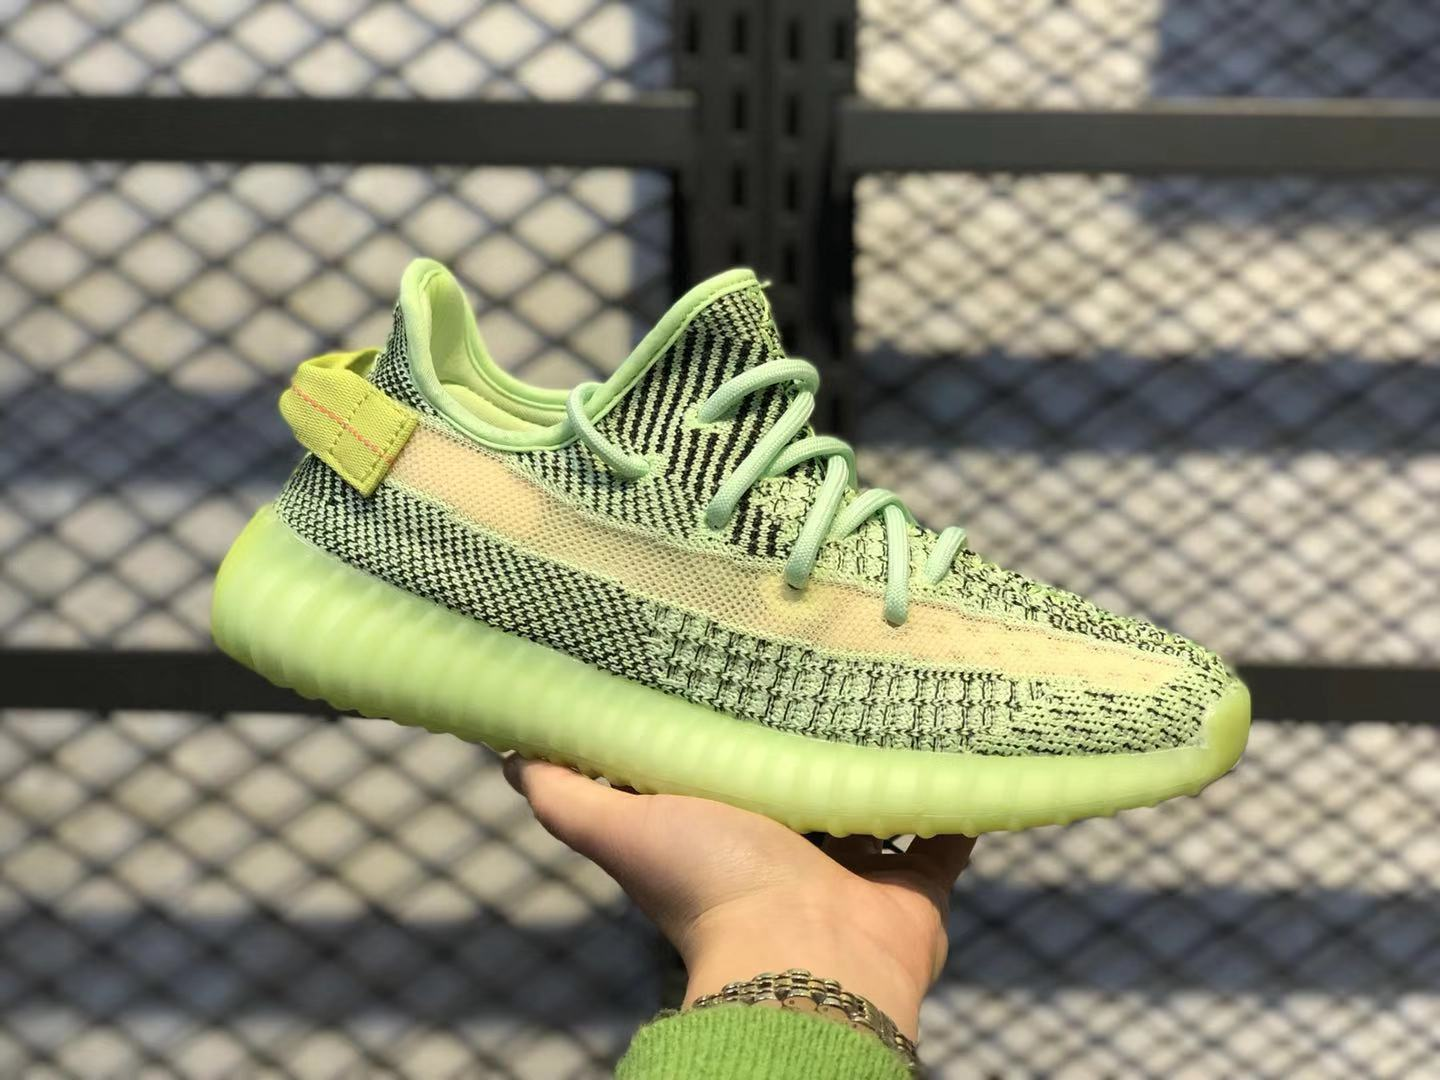 """Best Sell Adidas Yeezy Boost 350 V2 """"Yeezreel"""" Newest Jogging Shoes FX4130"""